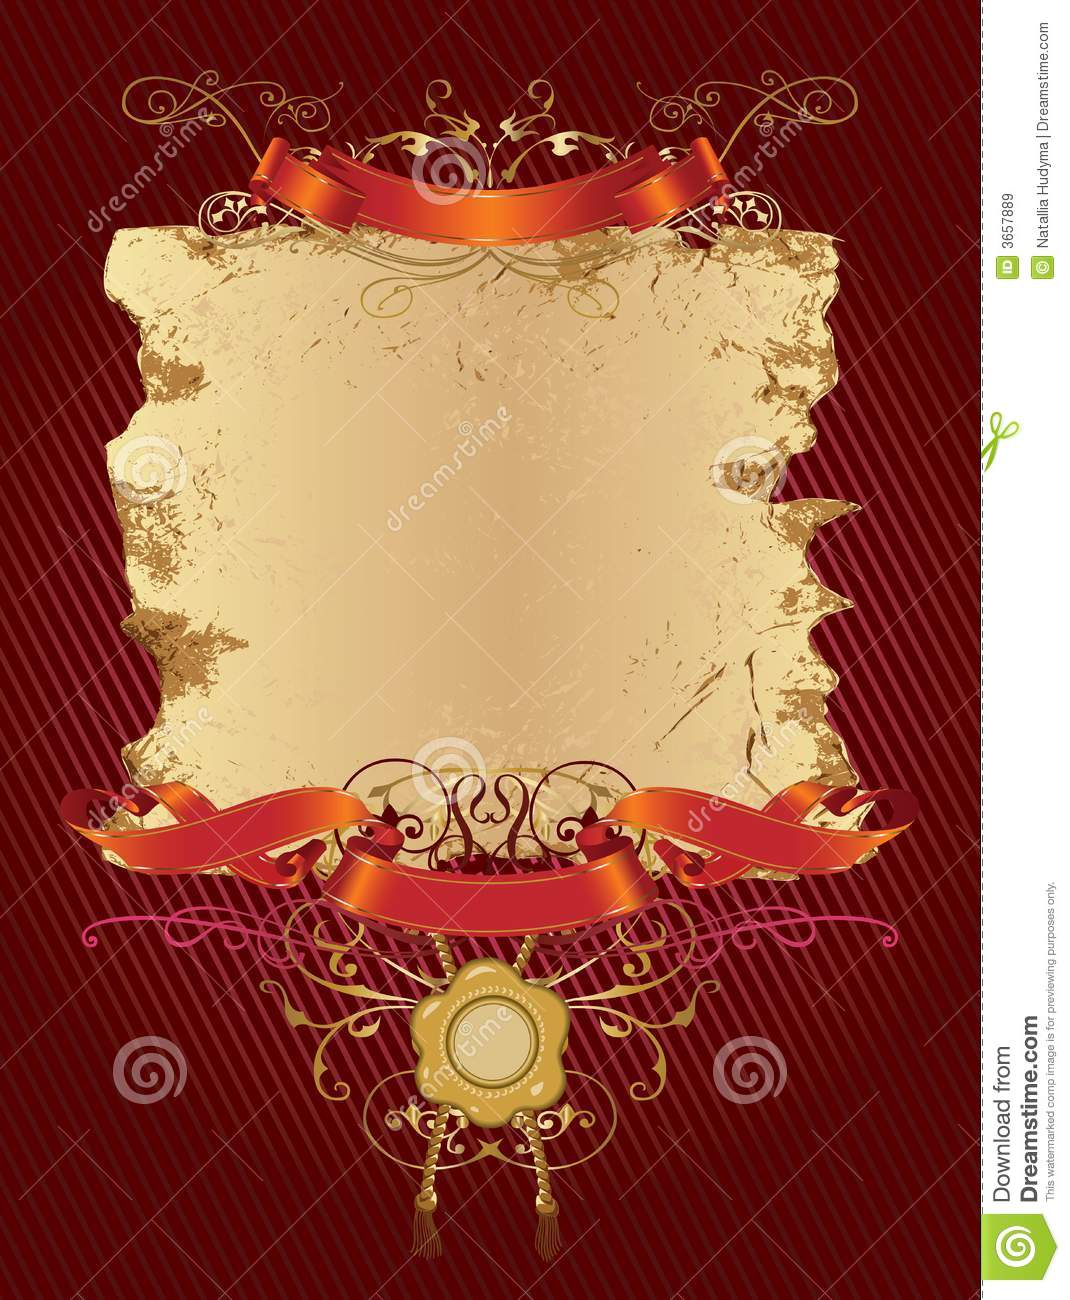 Decorative_banner_in_red_color